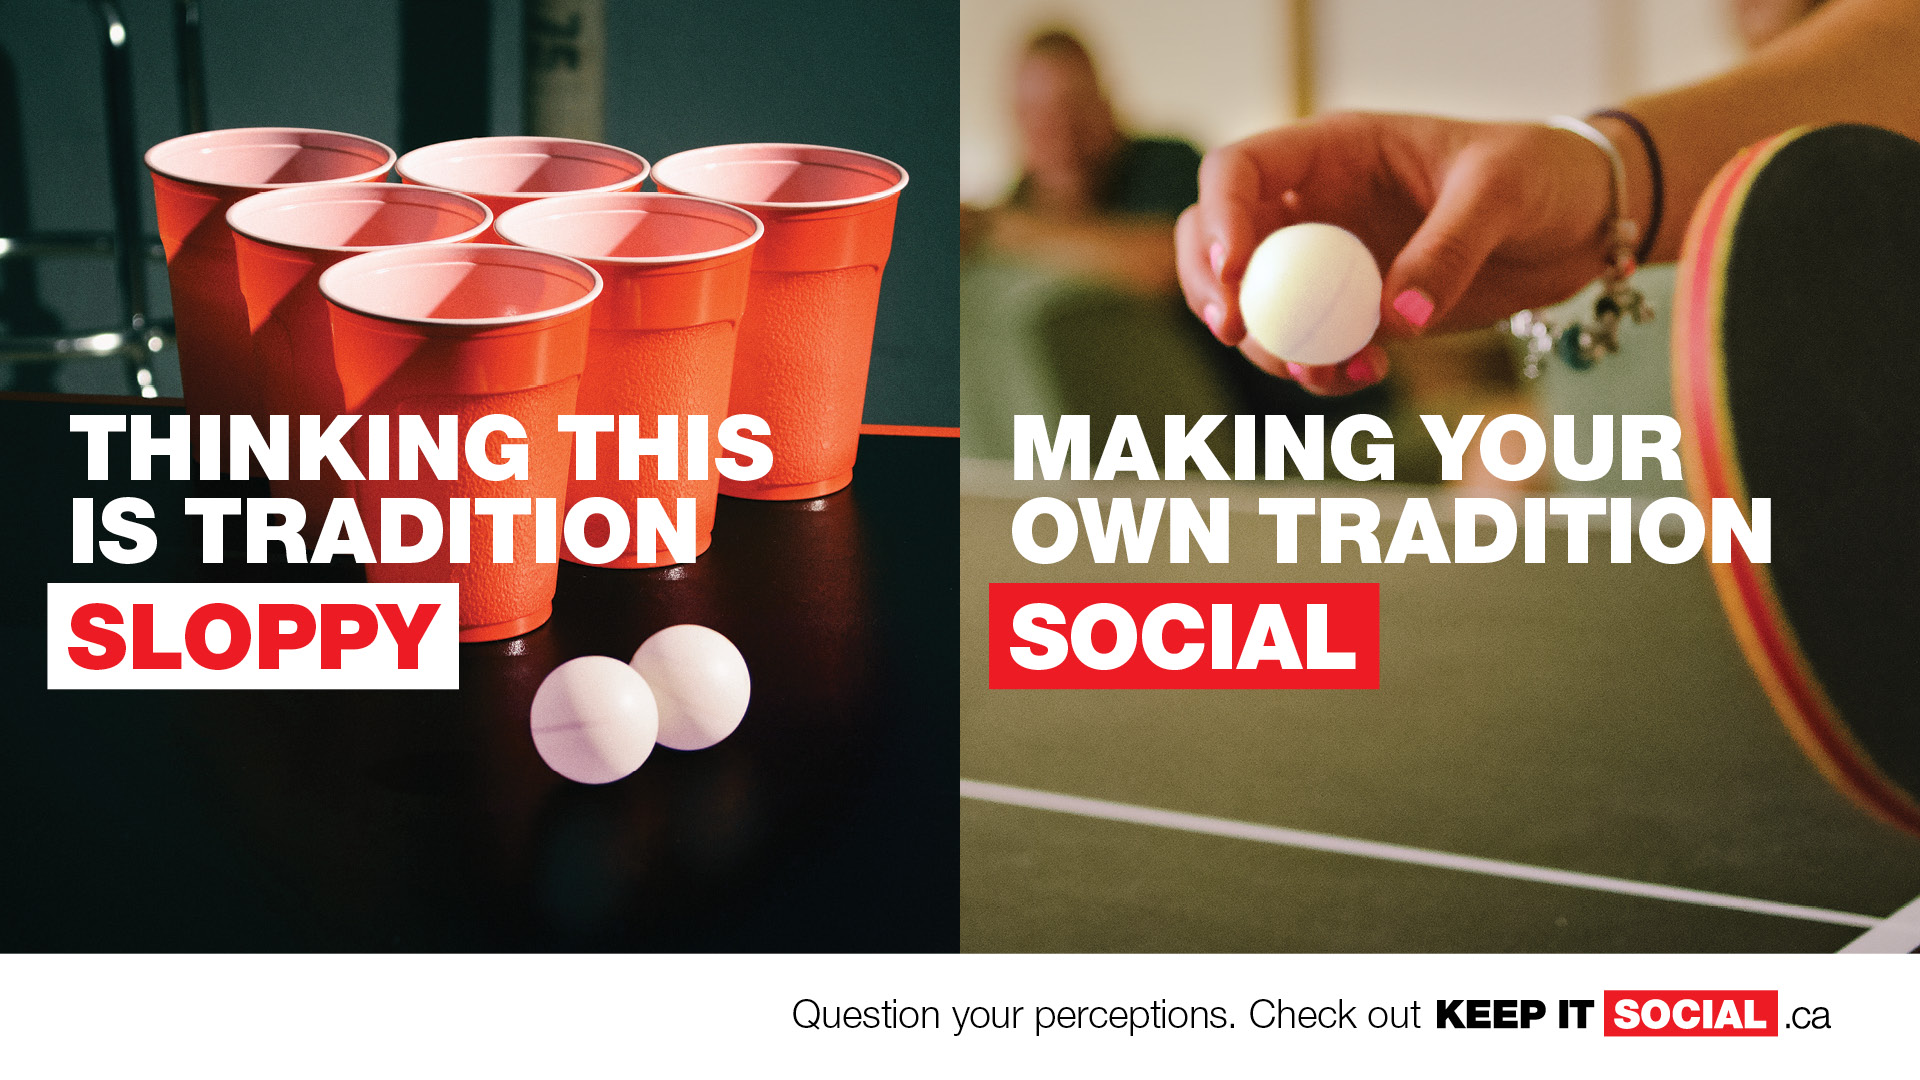 NSLC keep it social campaign